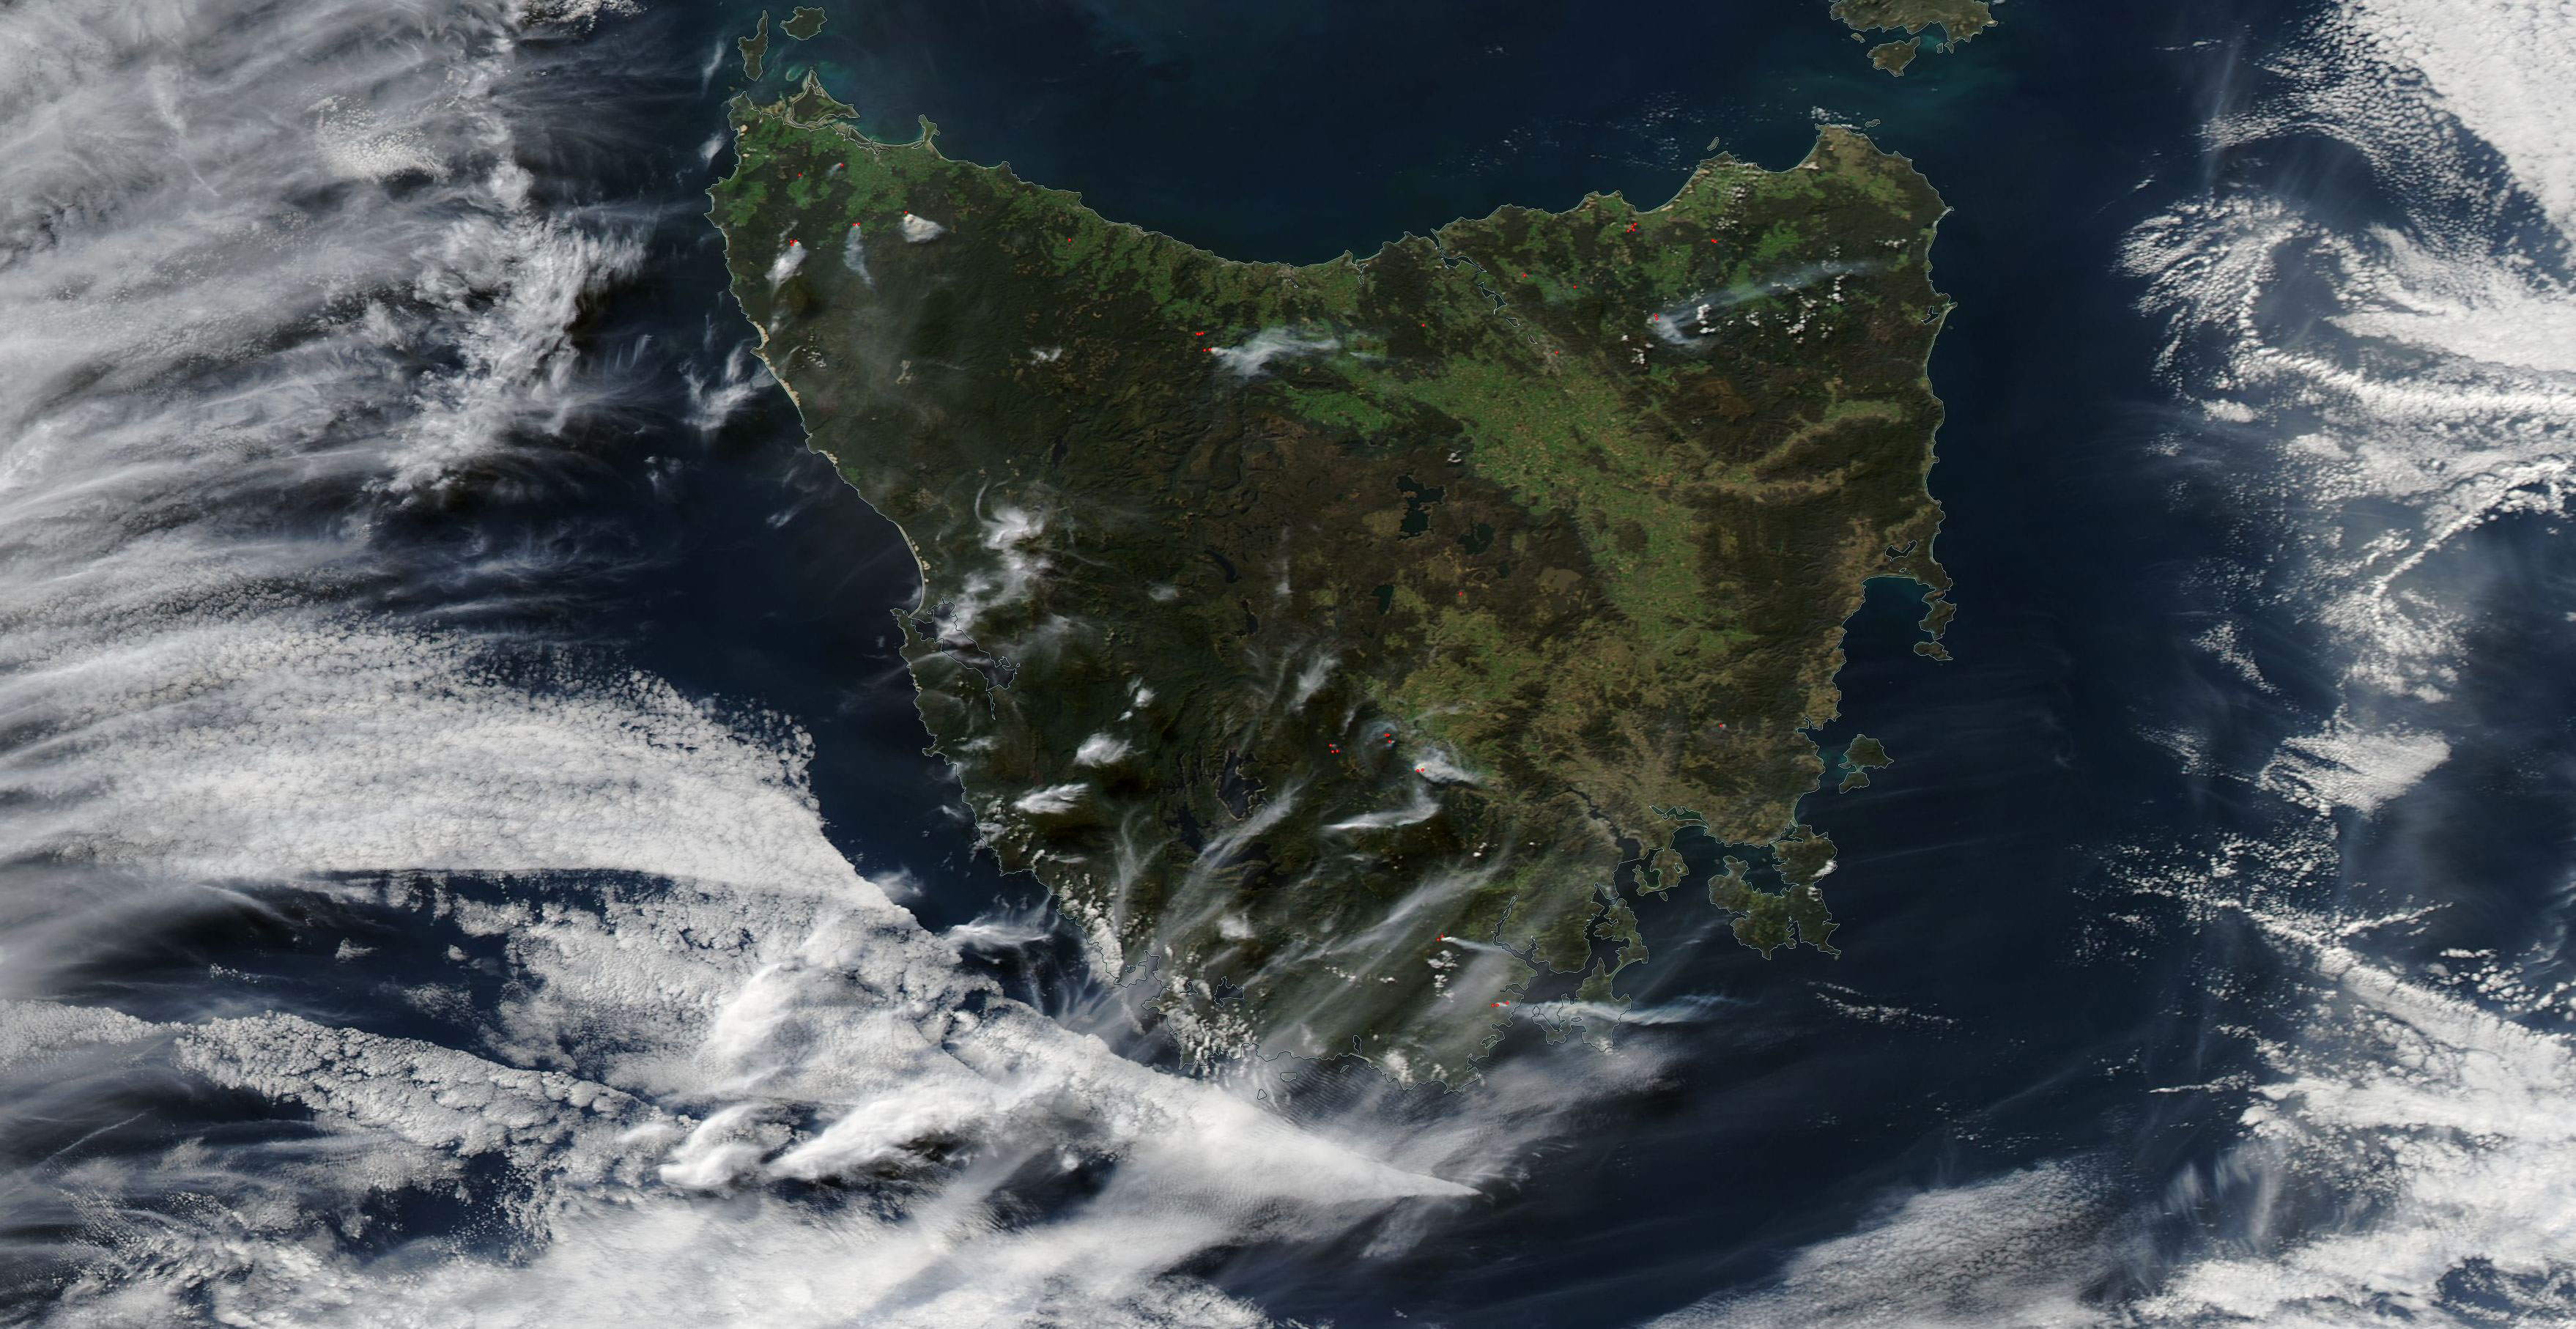 Fires in Tasmania on 23 April 2018 (MODIS/Aqua)